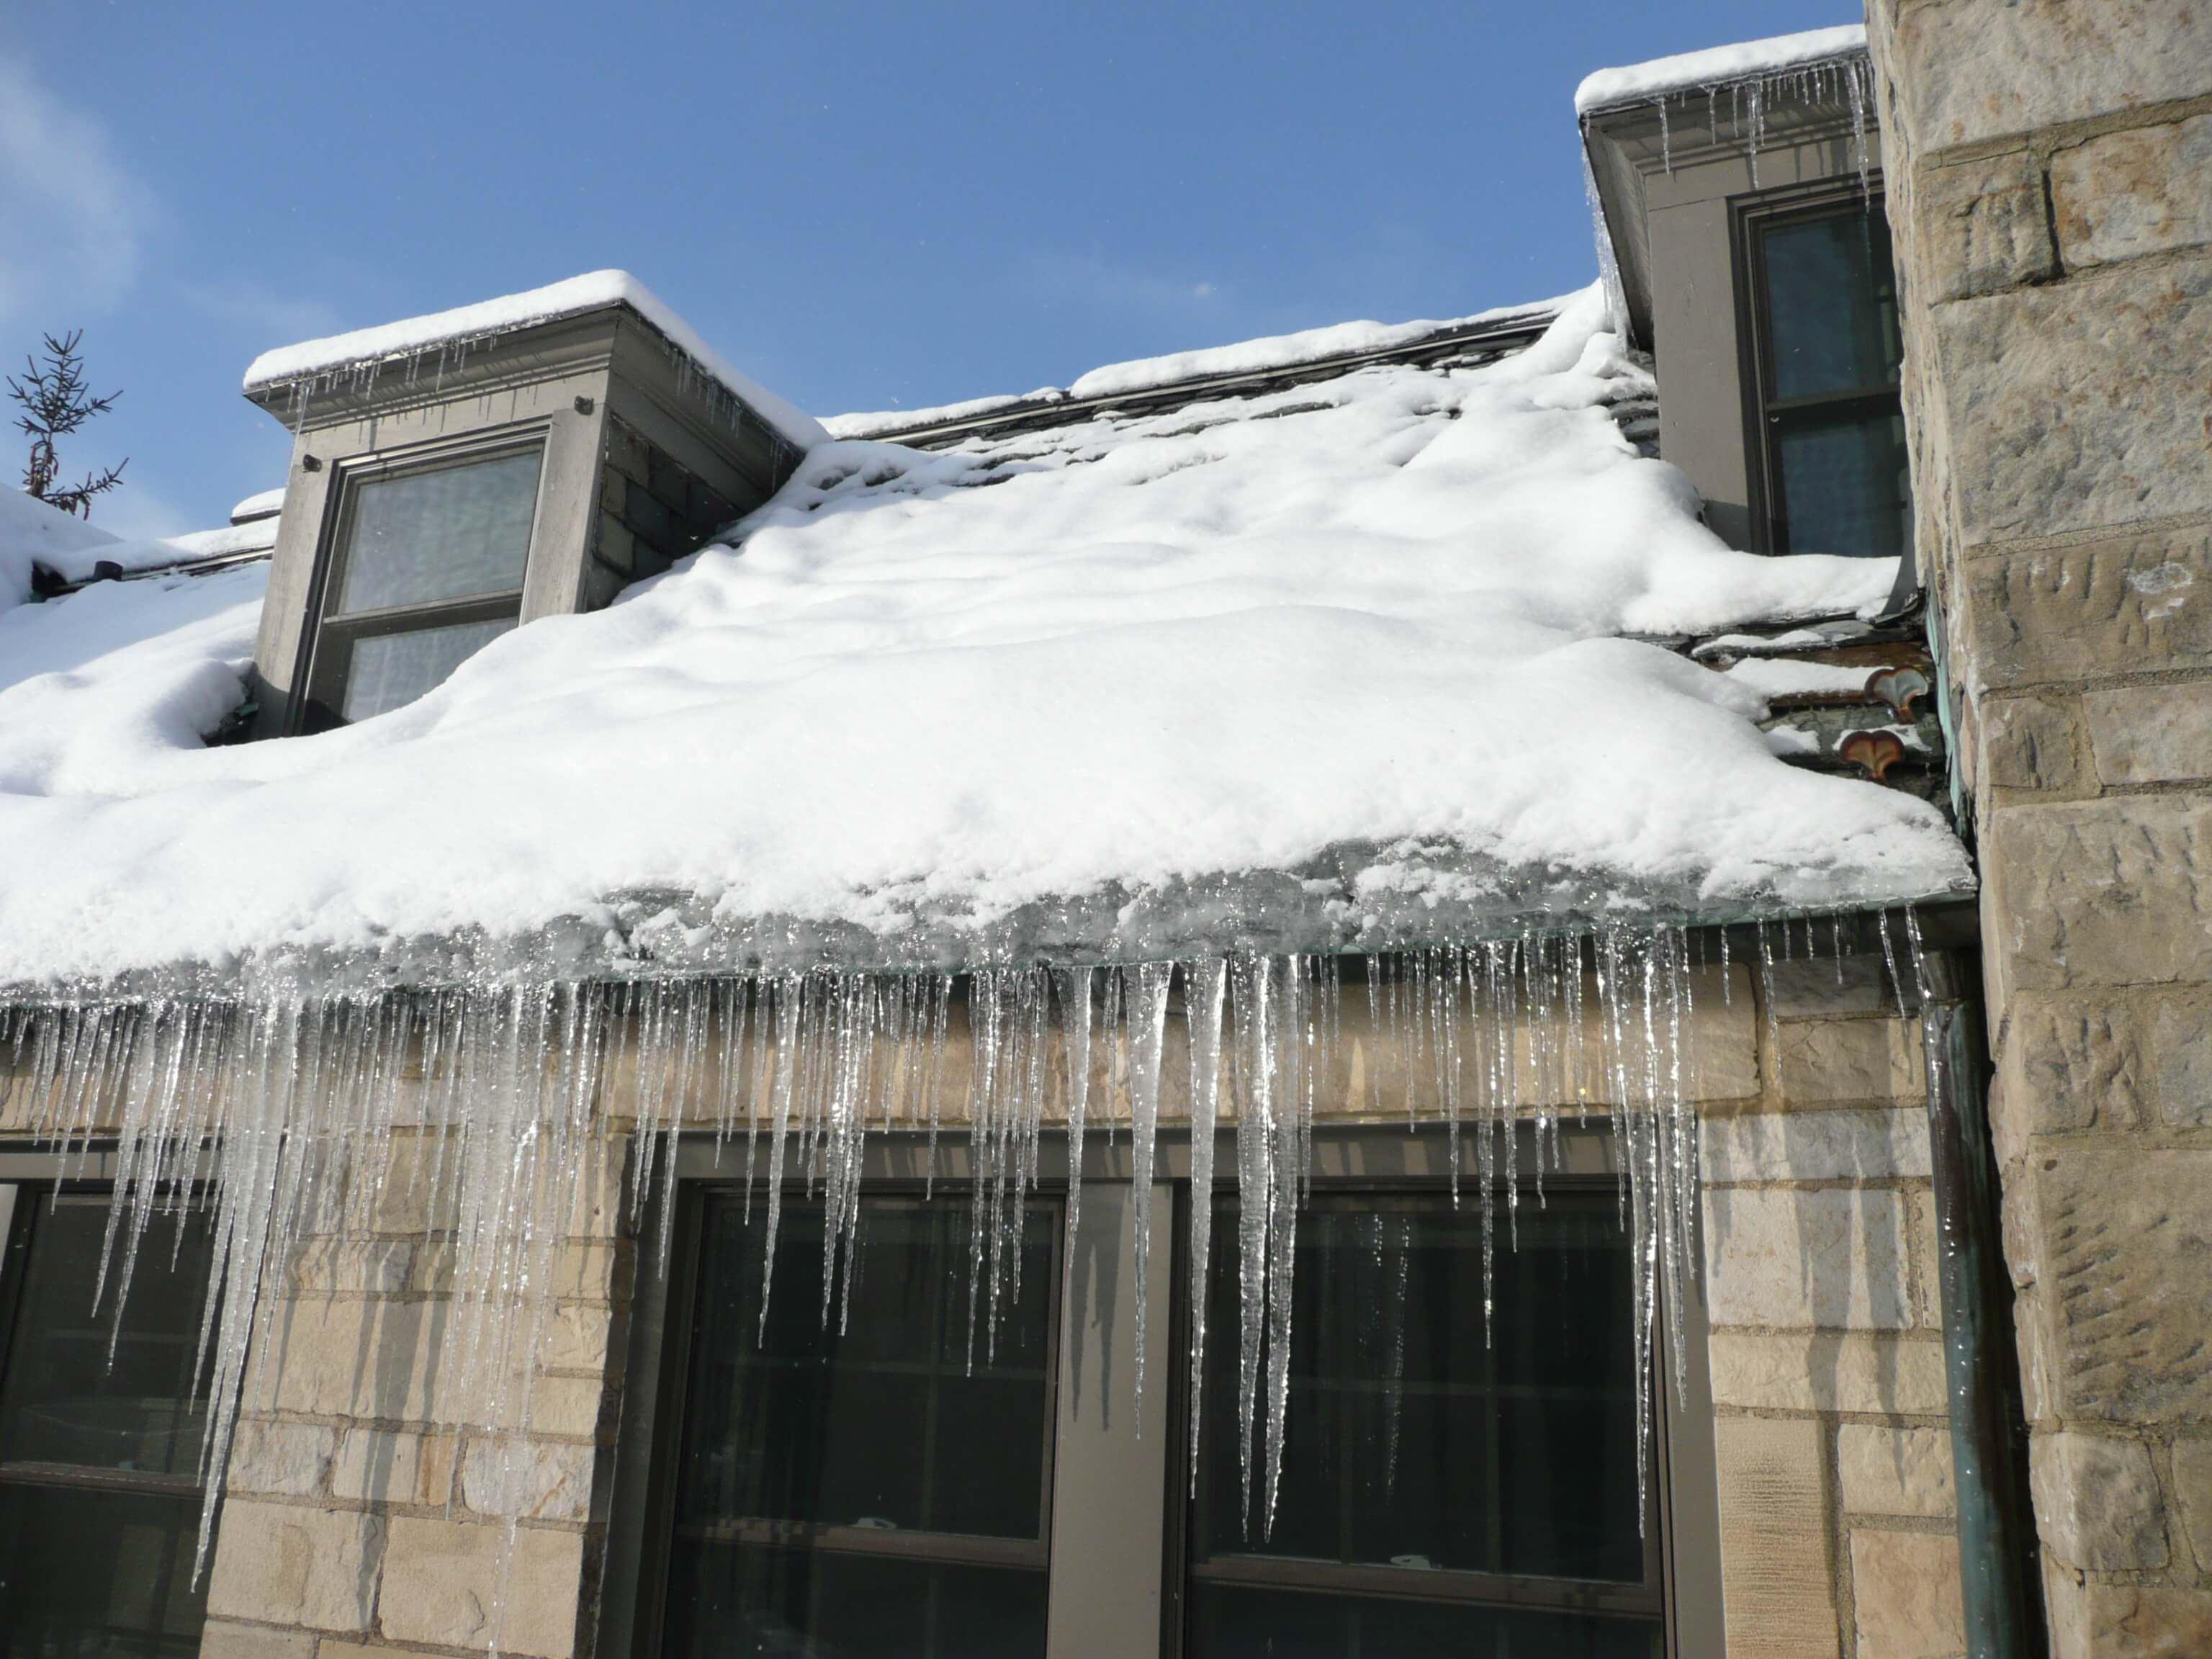 Ice dams can potentially harm your home's interior